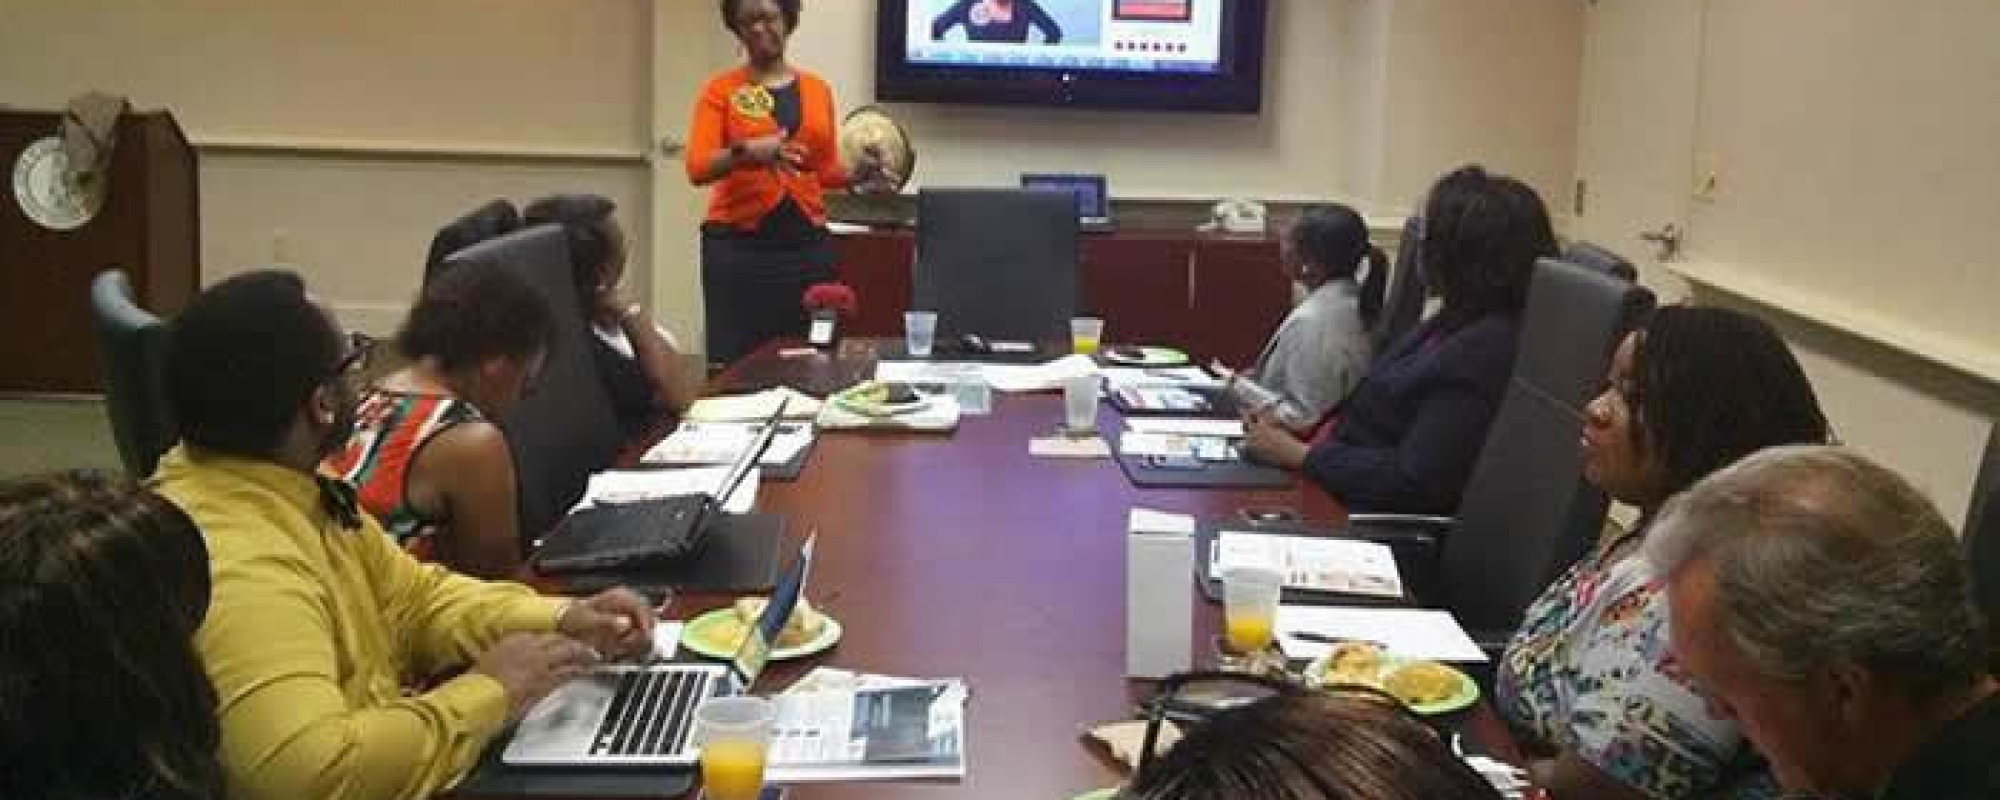 Eb teaching blogging for City of Columbia-Sept2014